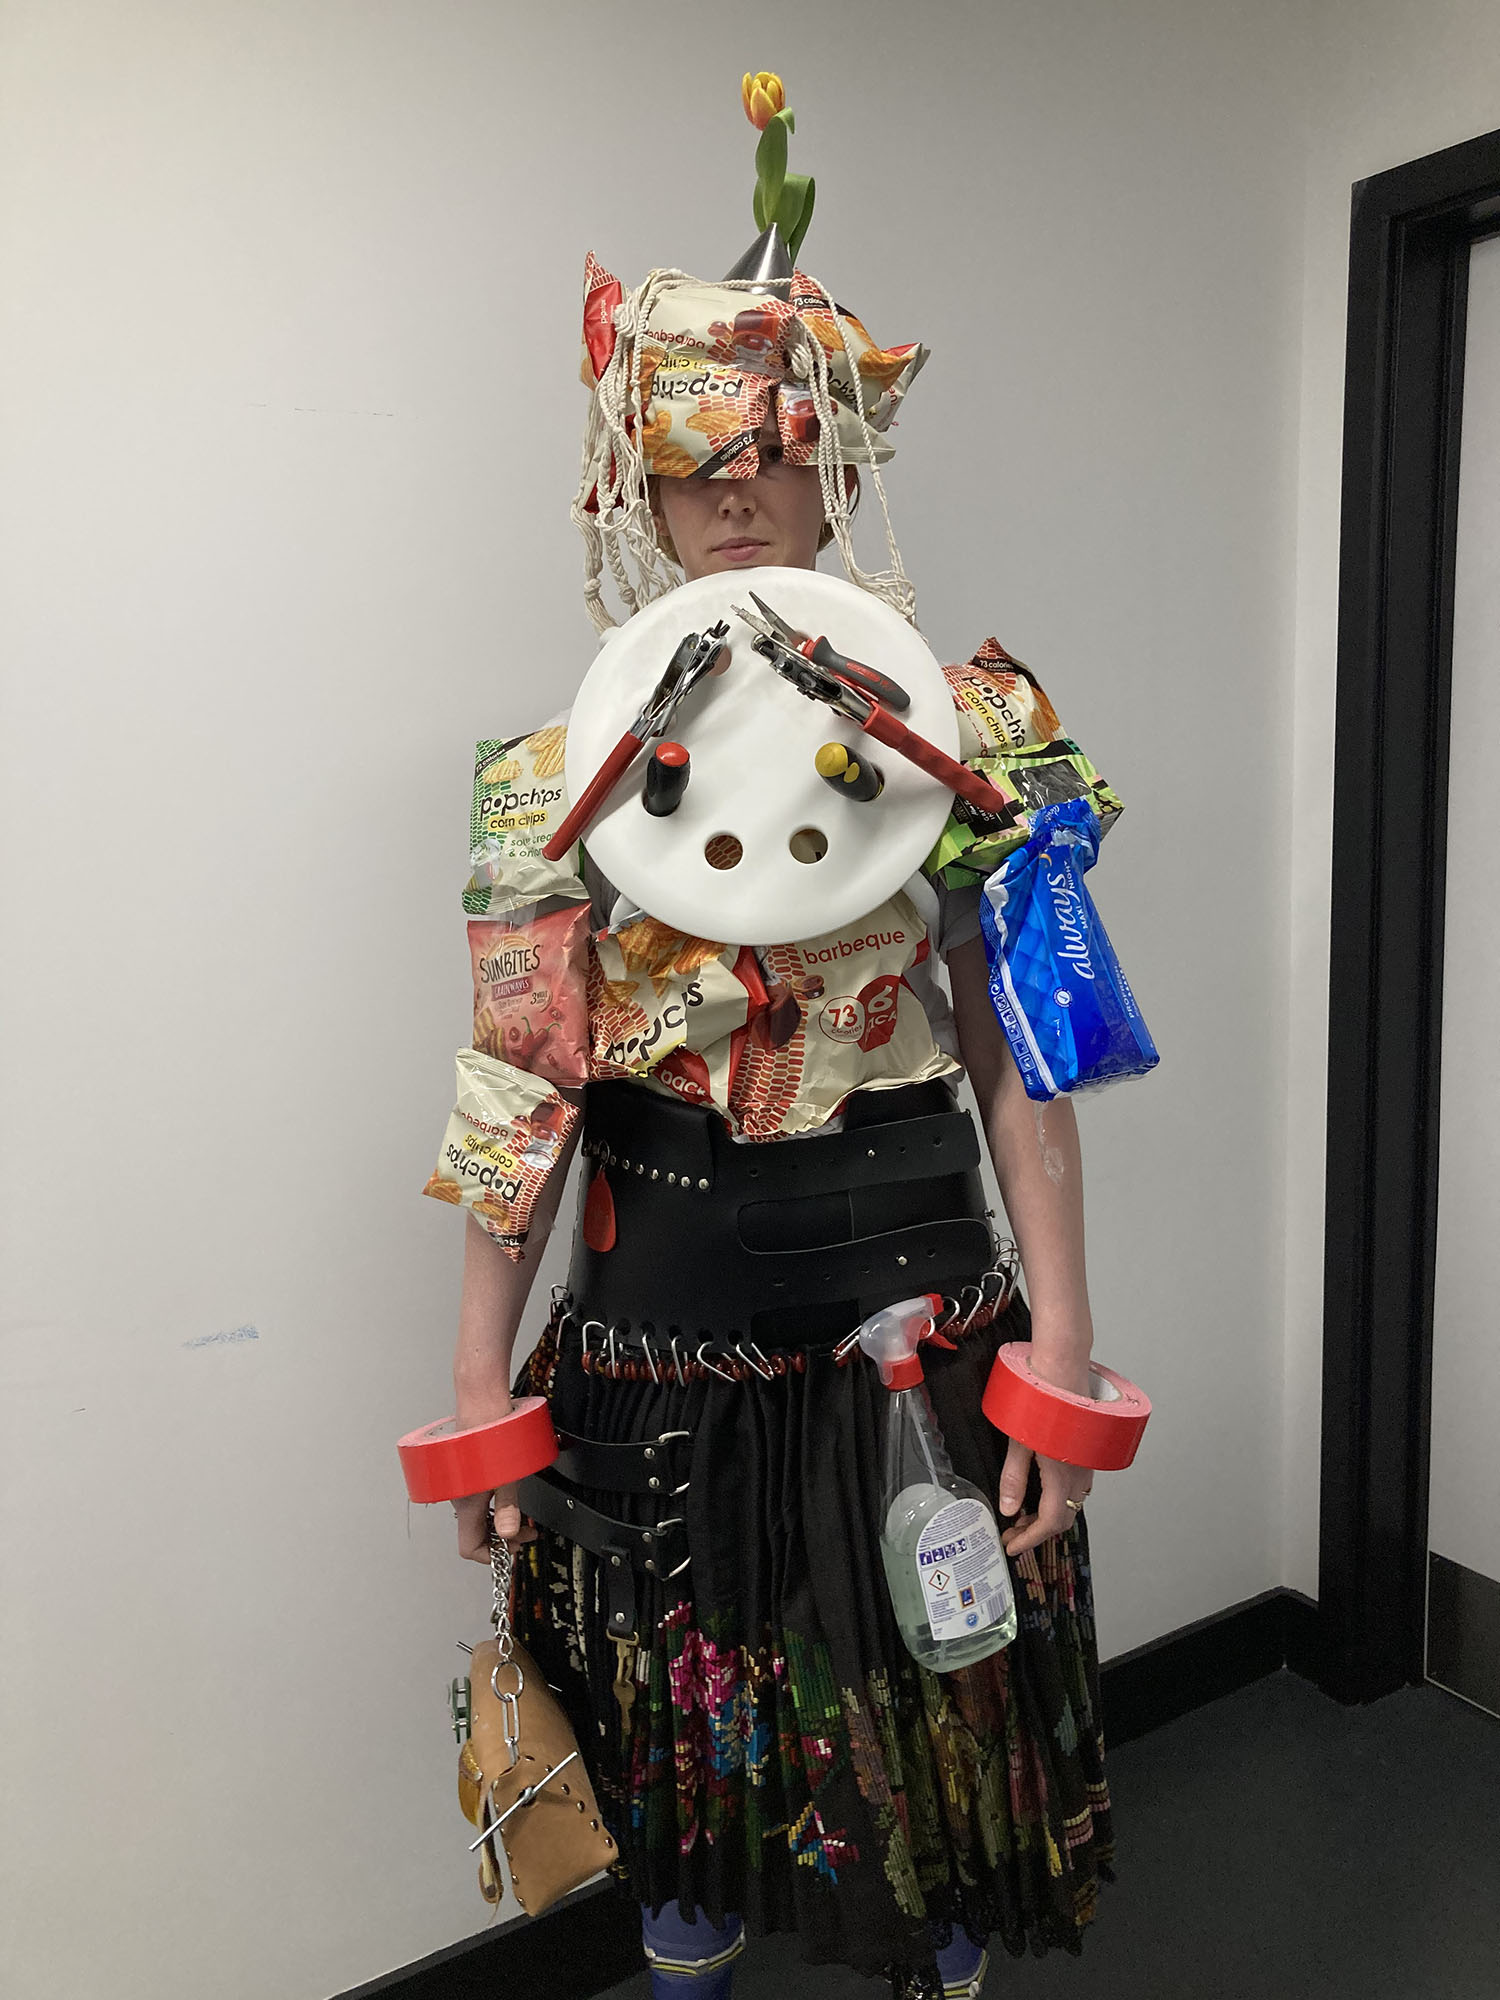 Fashion from Isolation: 5 designers create looks using only household items